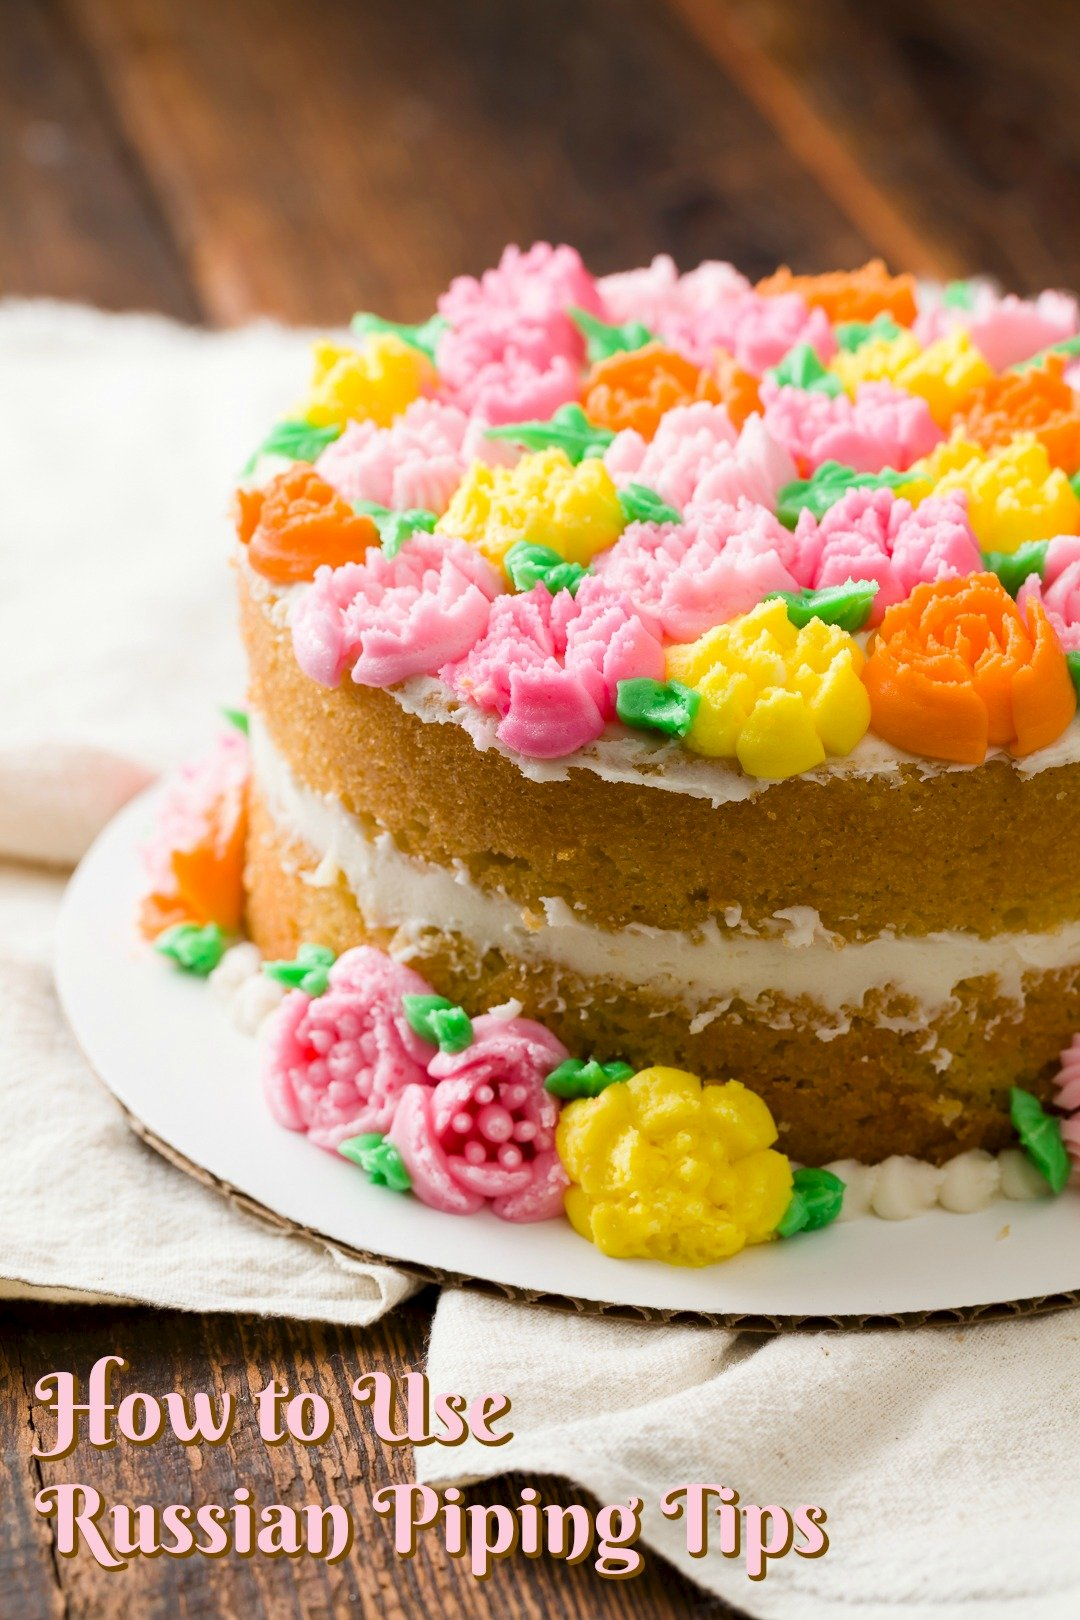 Cake Baking Classes In St Louis